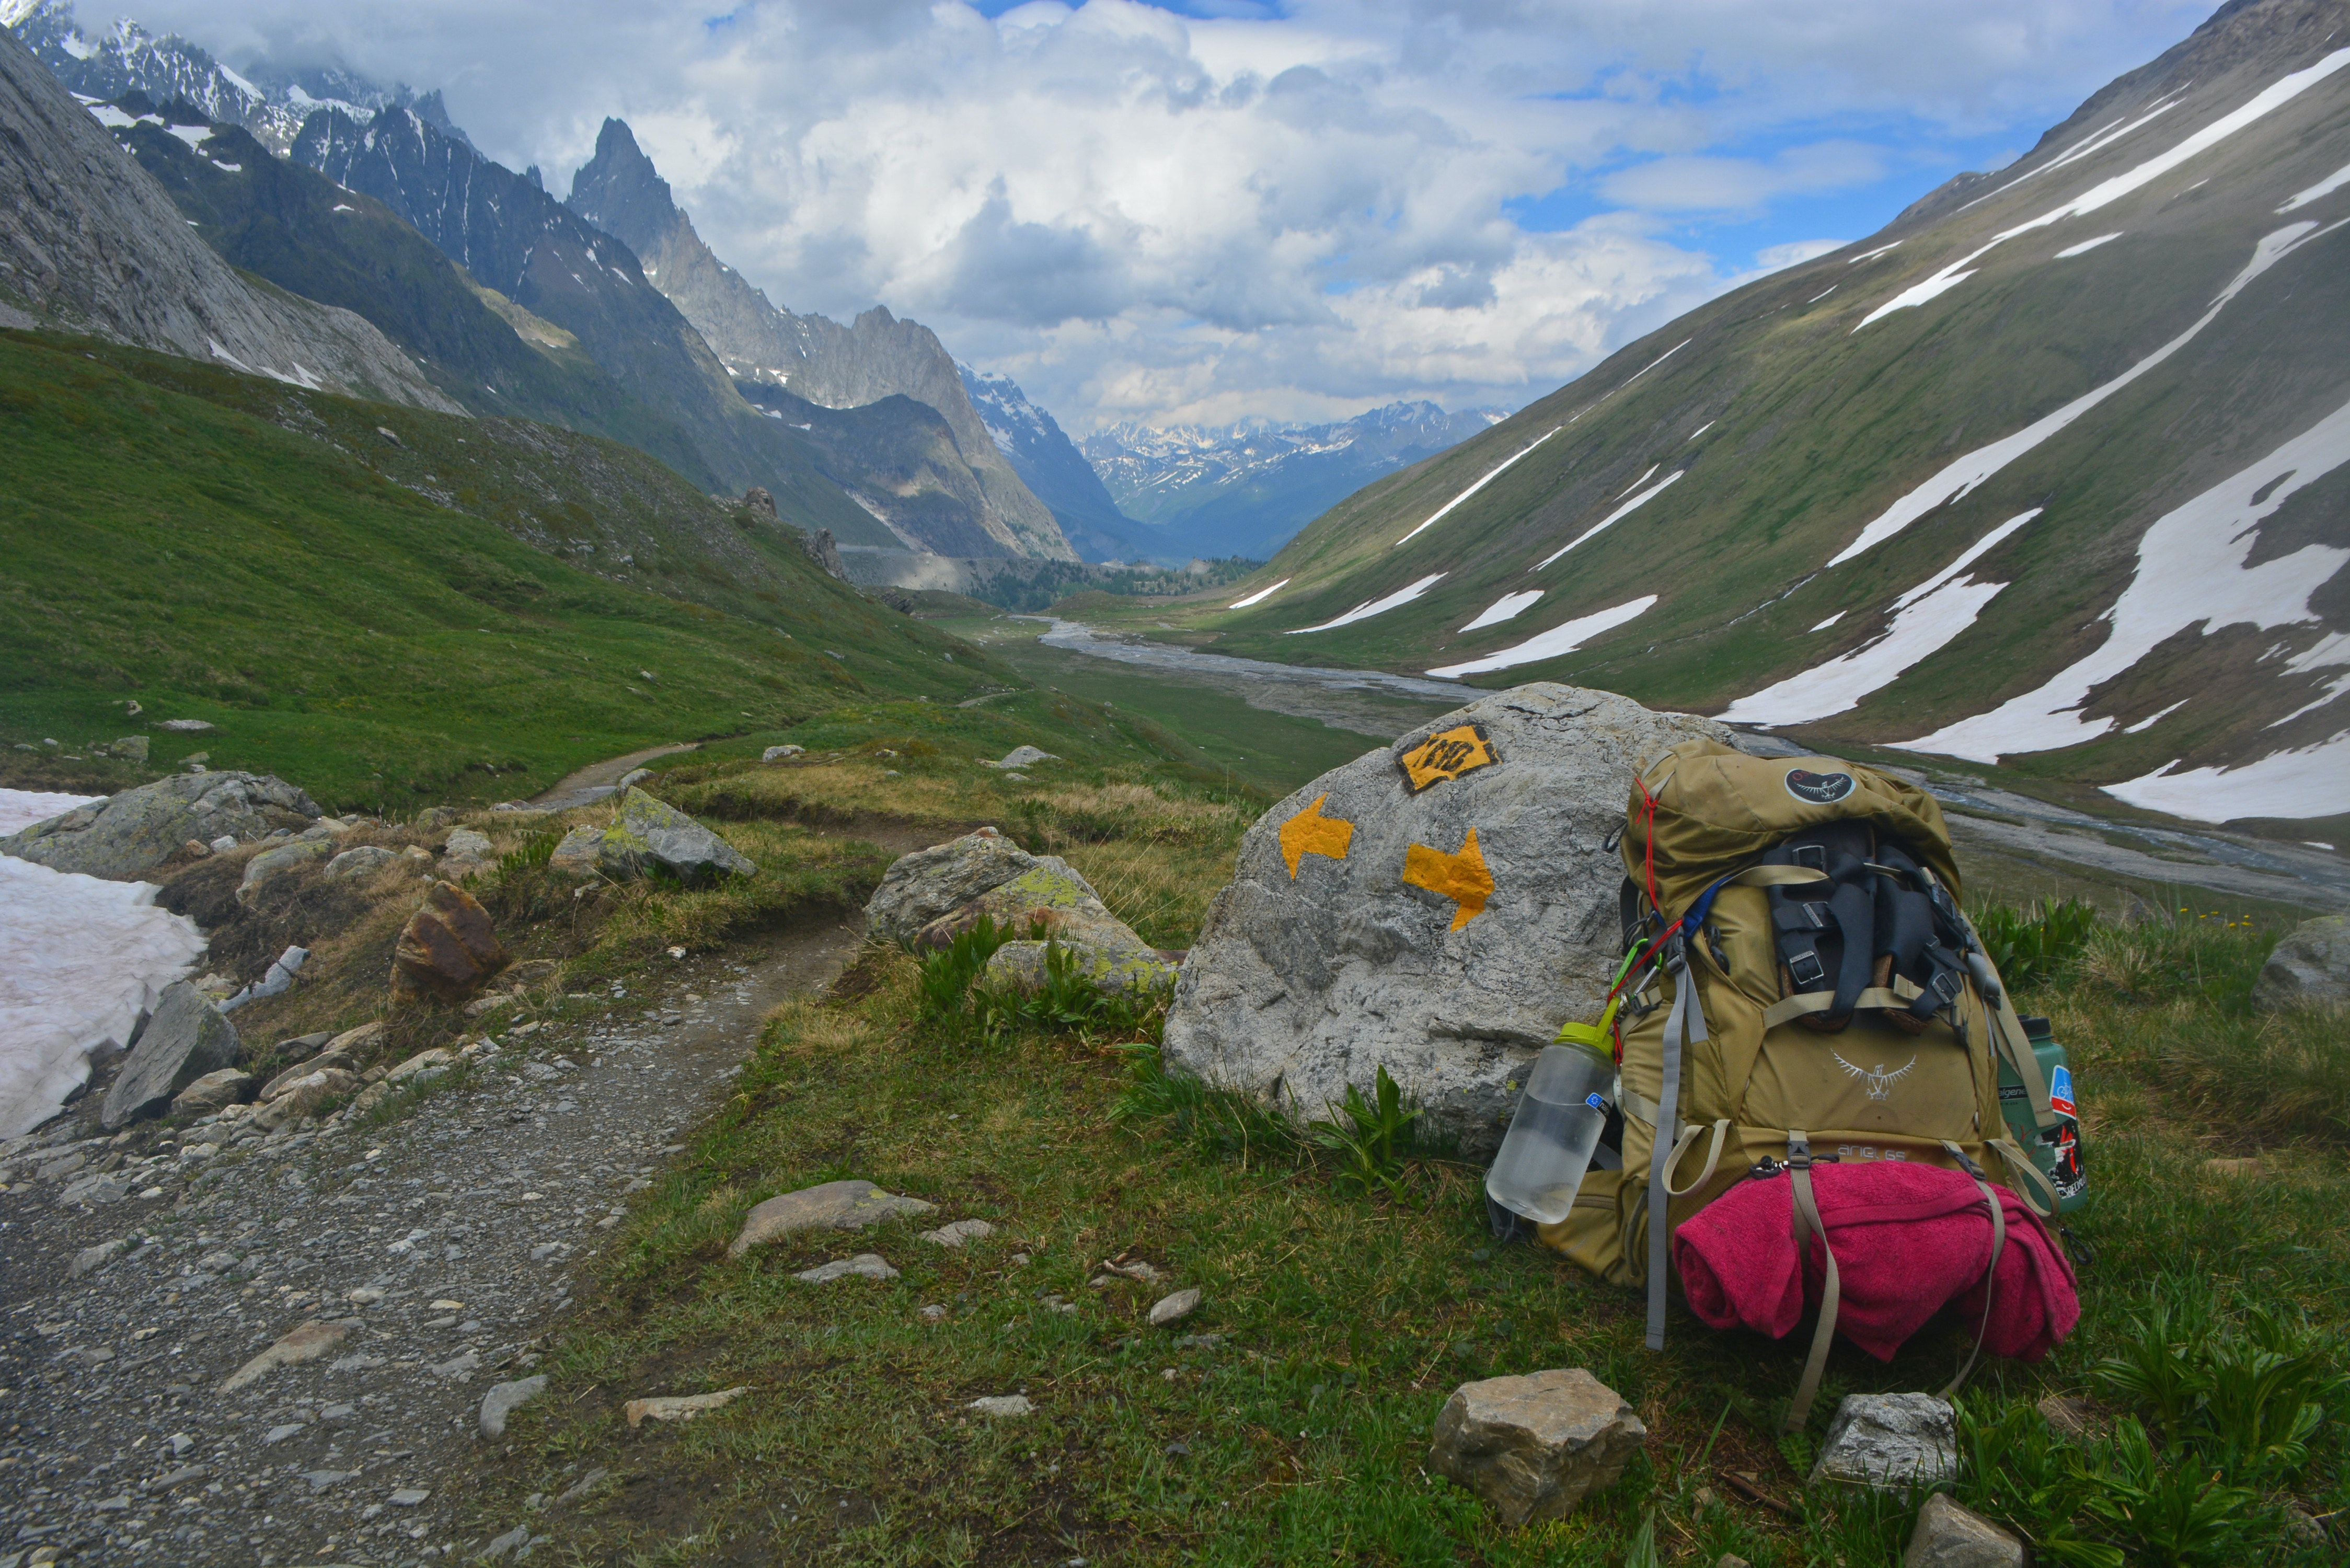 An Osprey backpack was one of the only pieces of proper hiking gear I had in Europe.